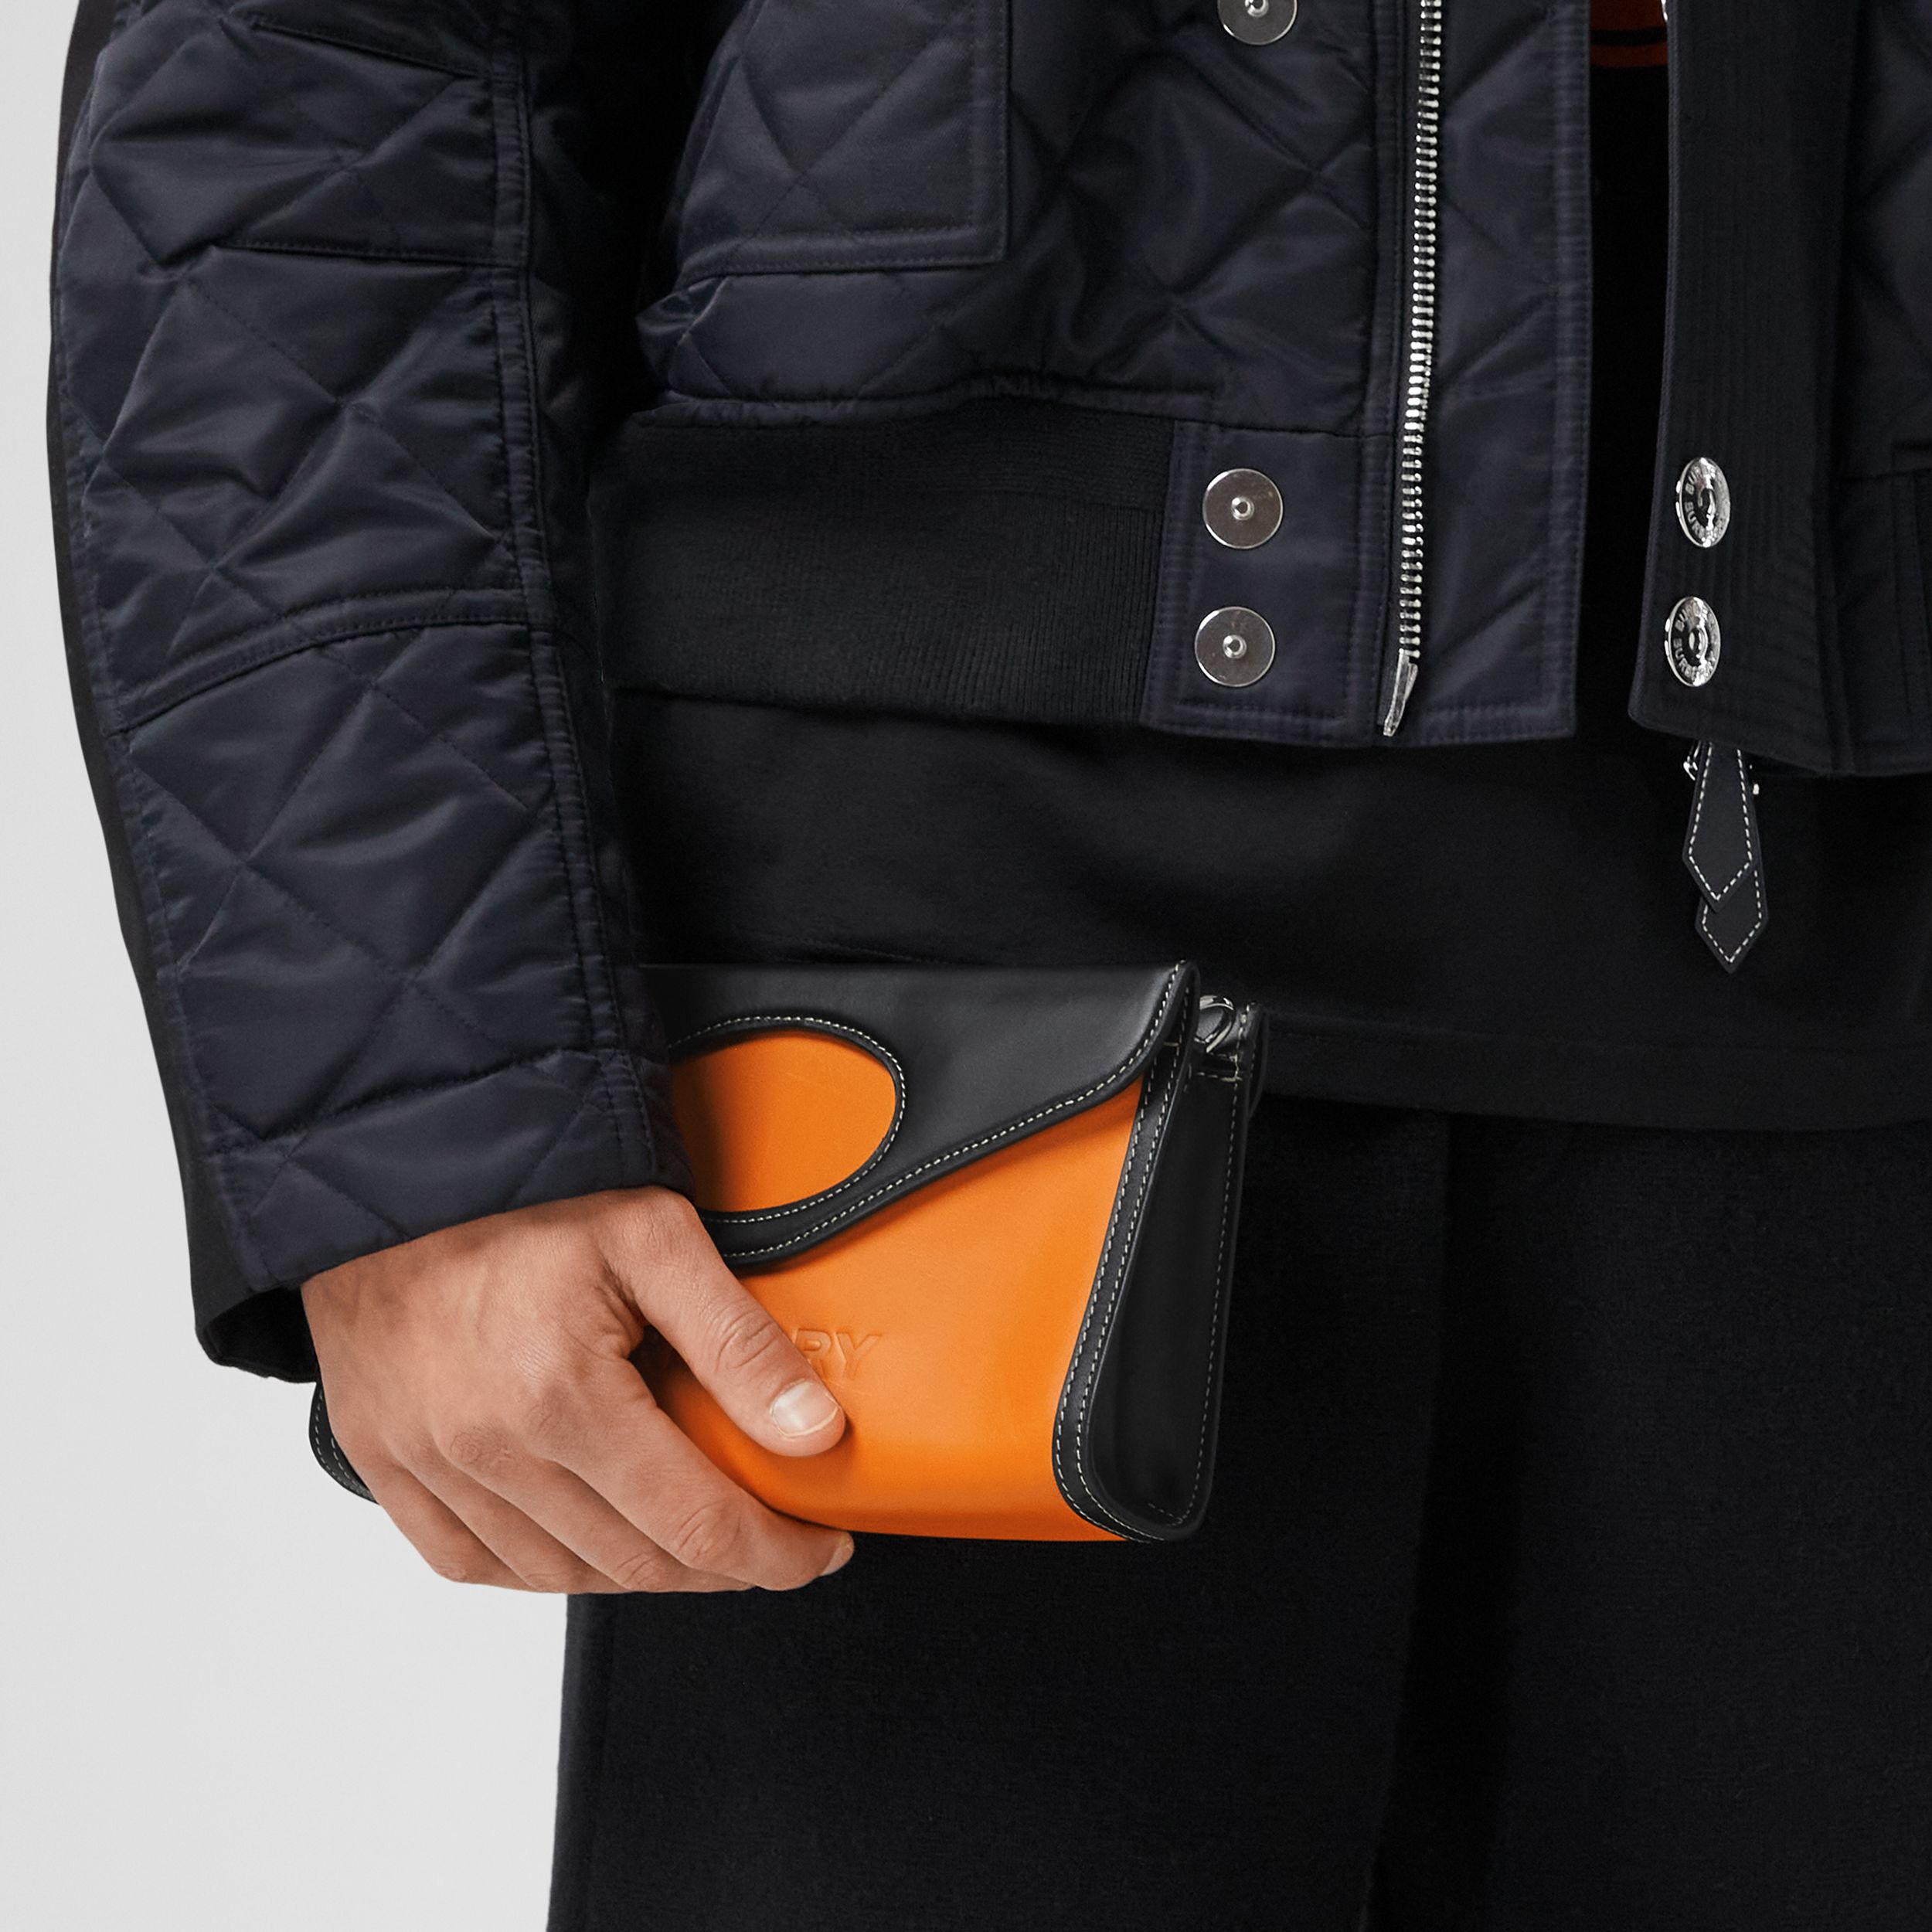 Two-tone Leather Foldover Pocket Bag in Deep Orange/black - Men | Burberry Australia - 4